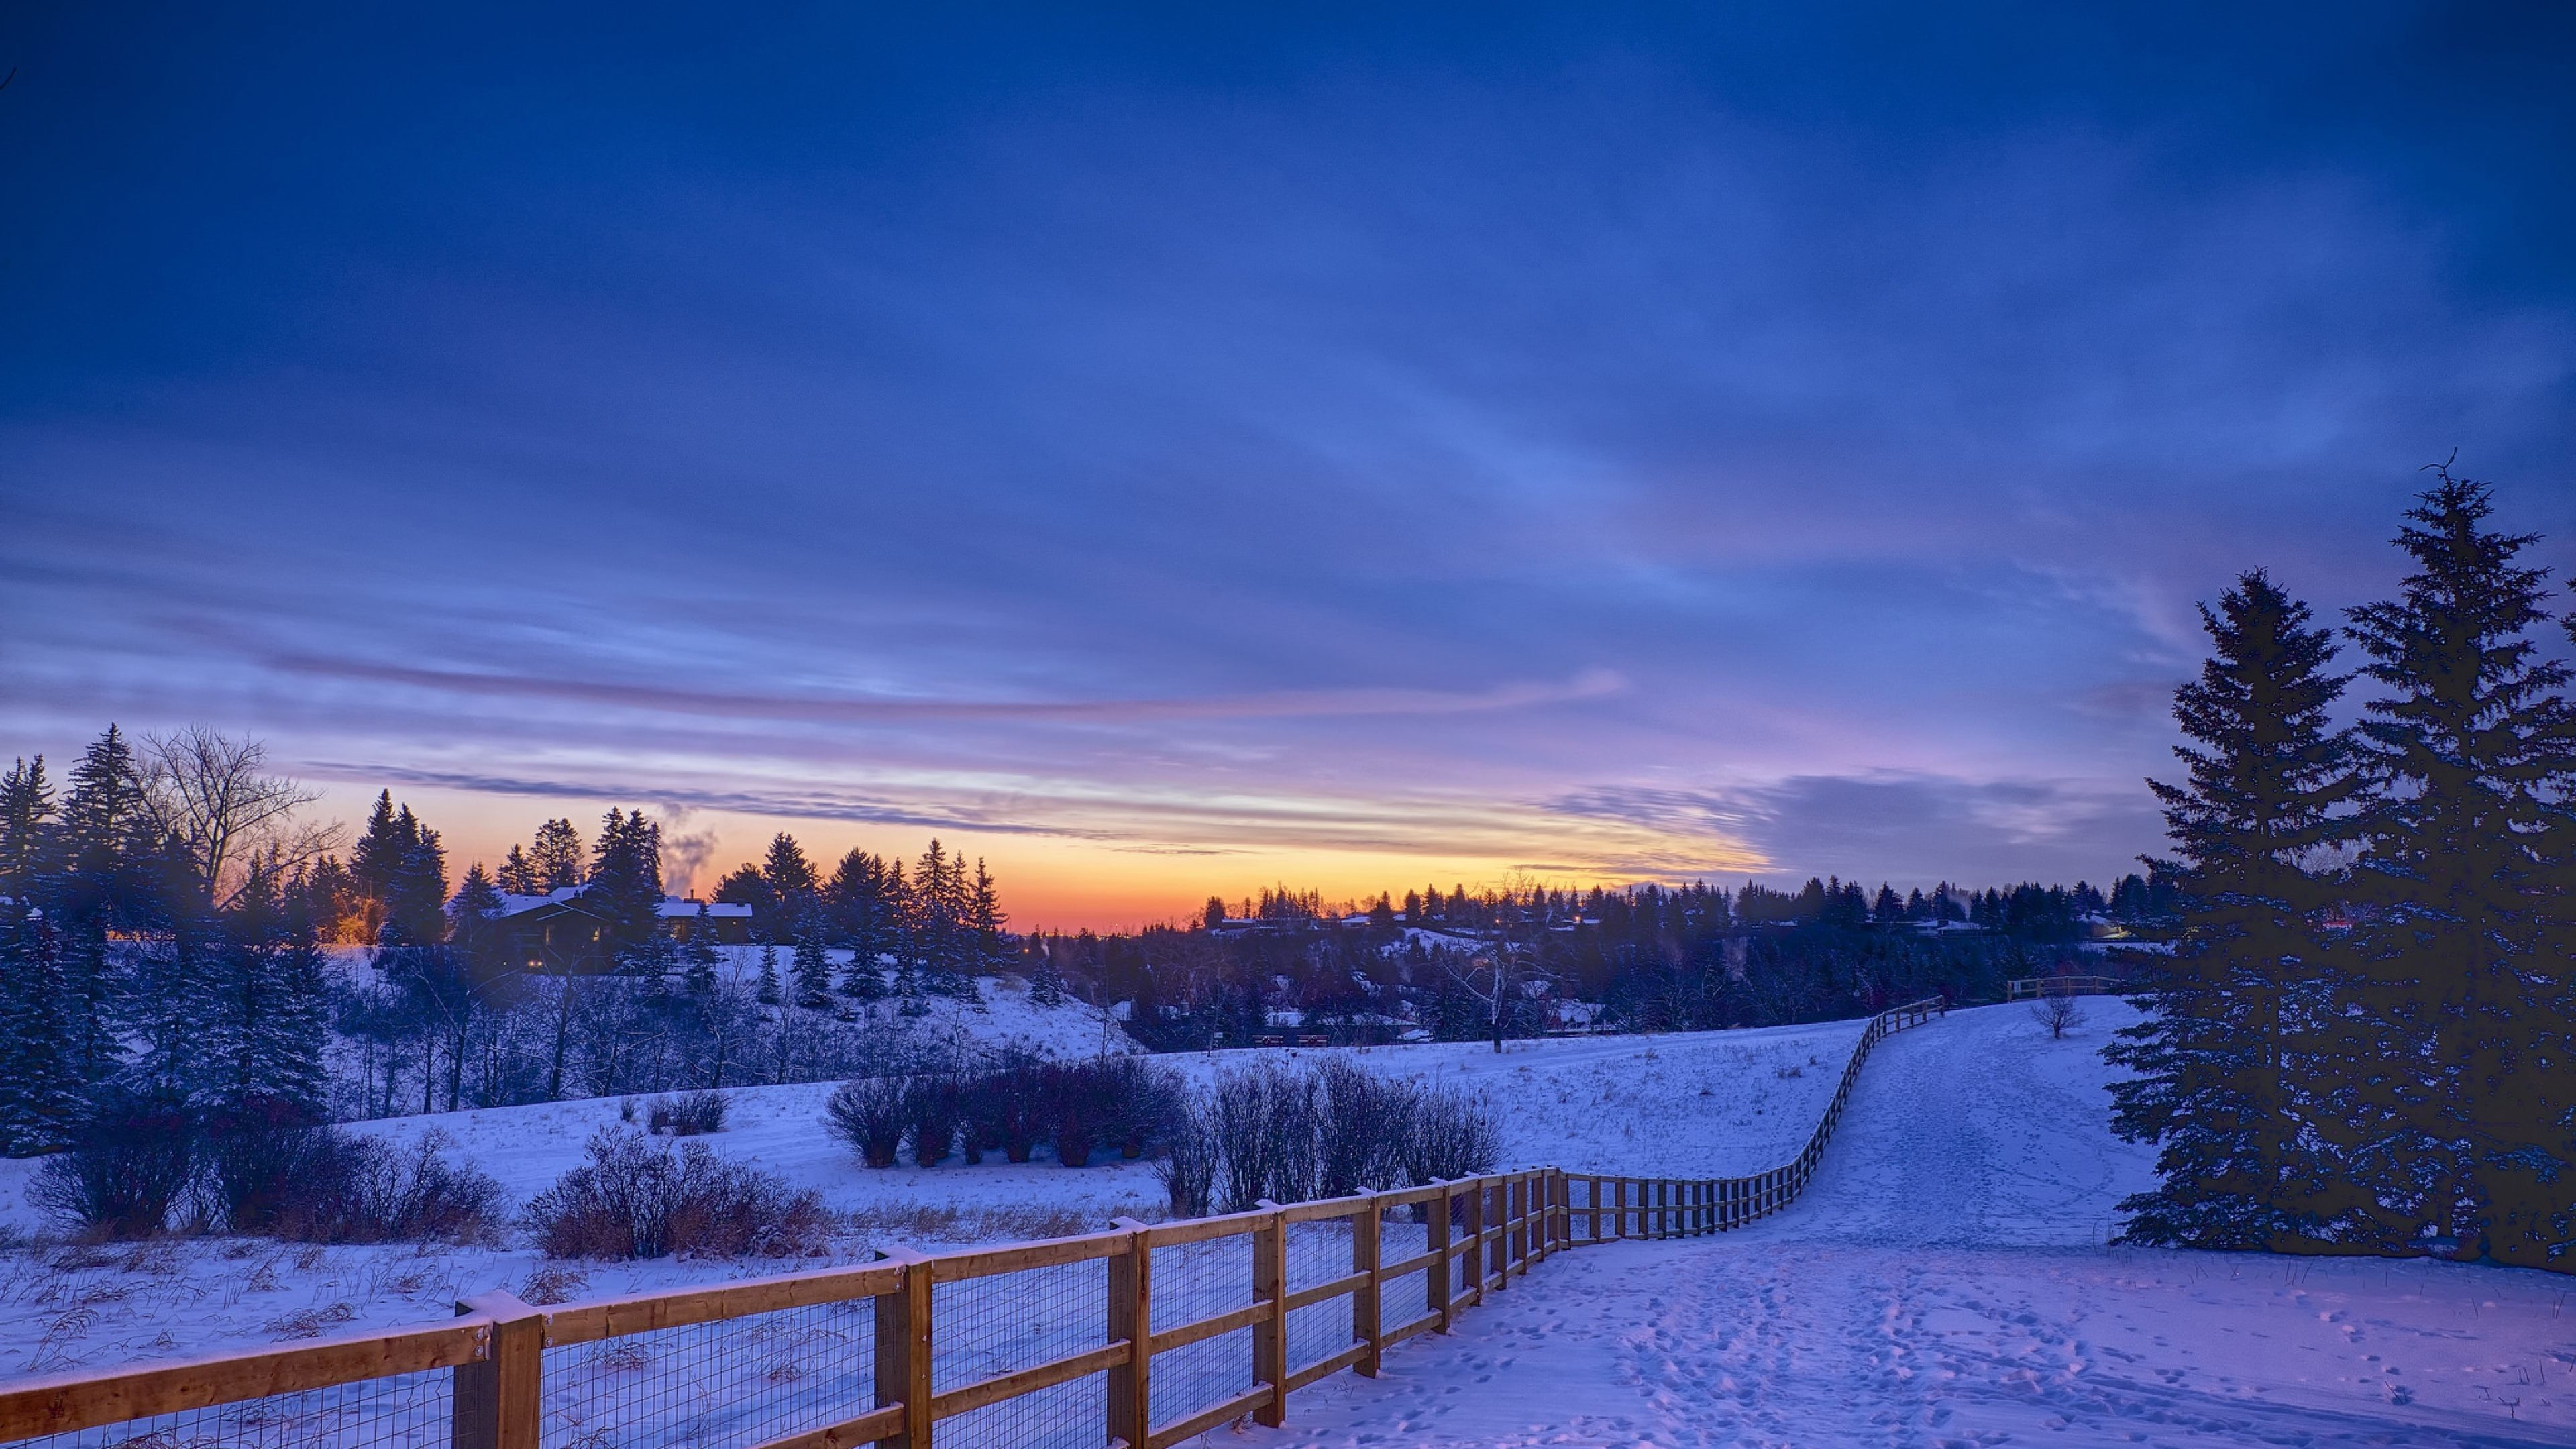 Pin By Vedel Lim Ying Ying On Uhd Landscape Wallpaper Winter Wallpaper Winter Wallpaper Desktop